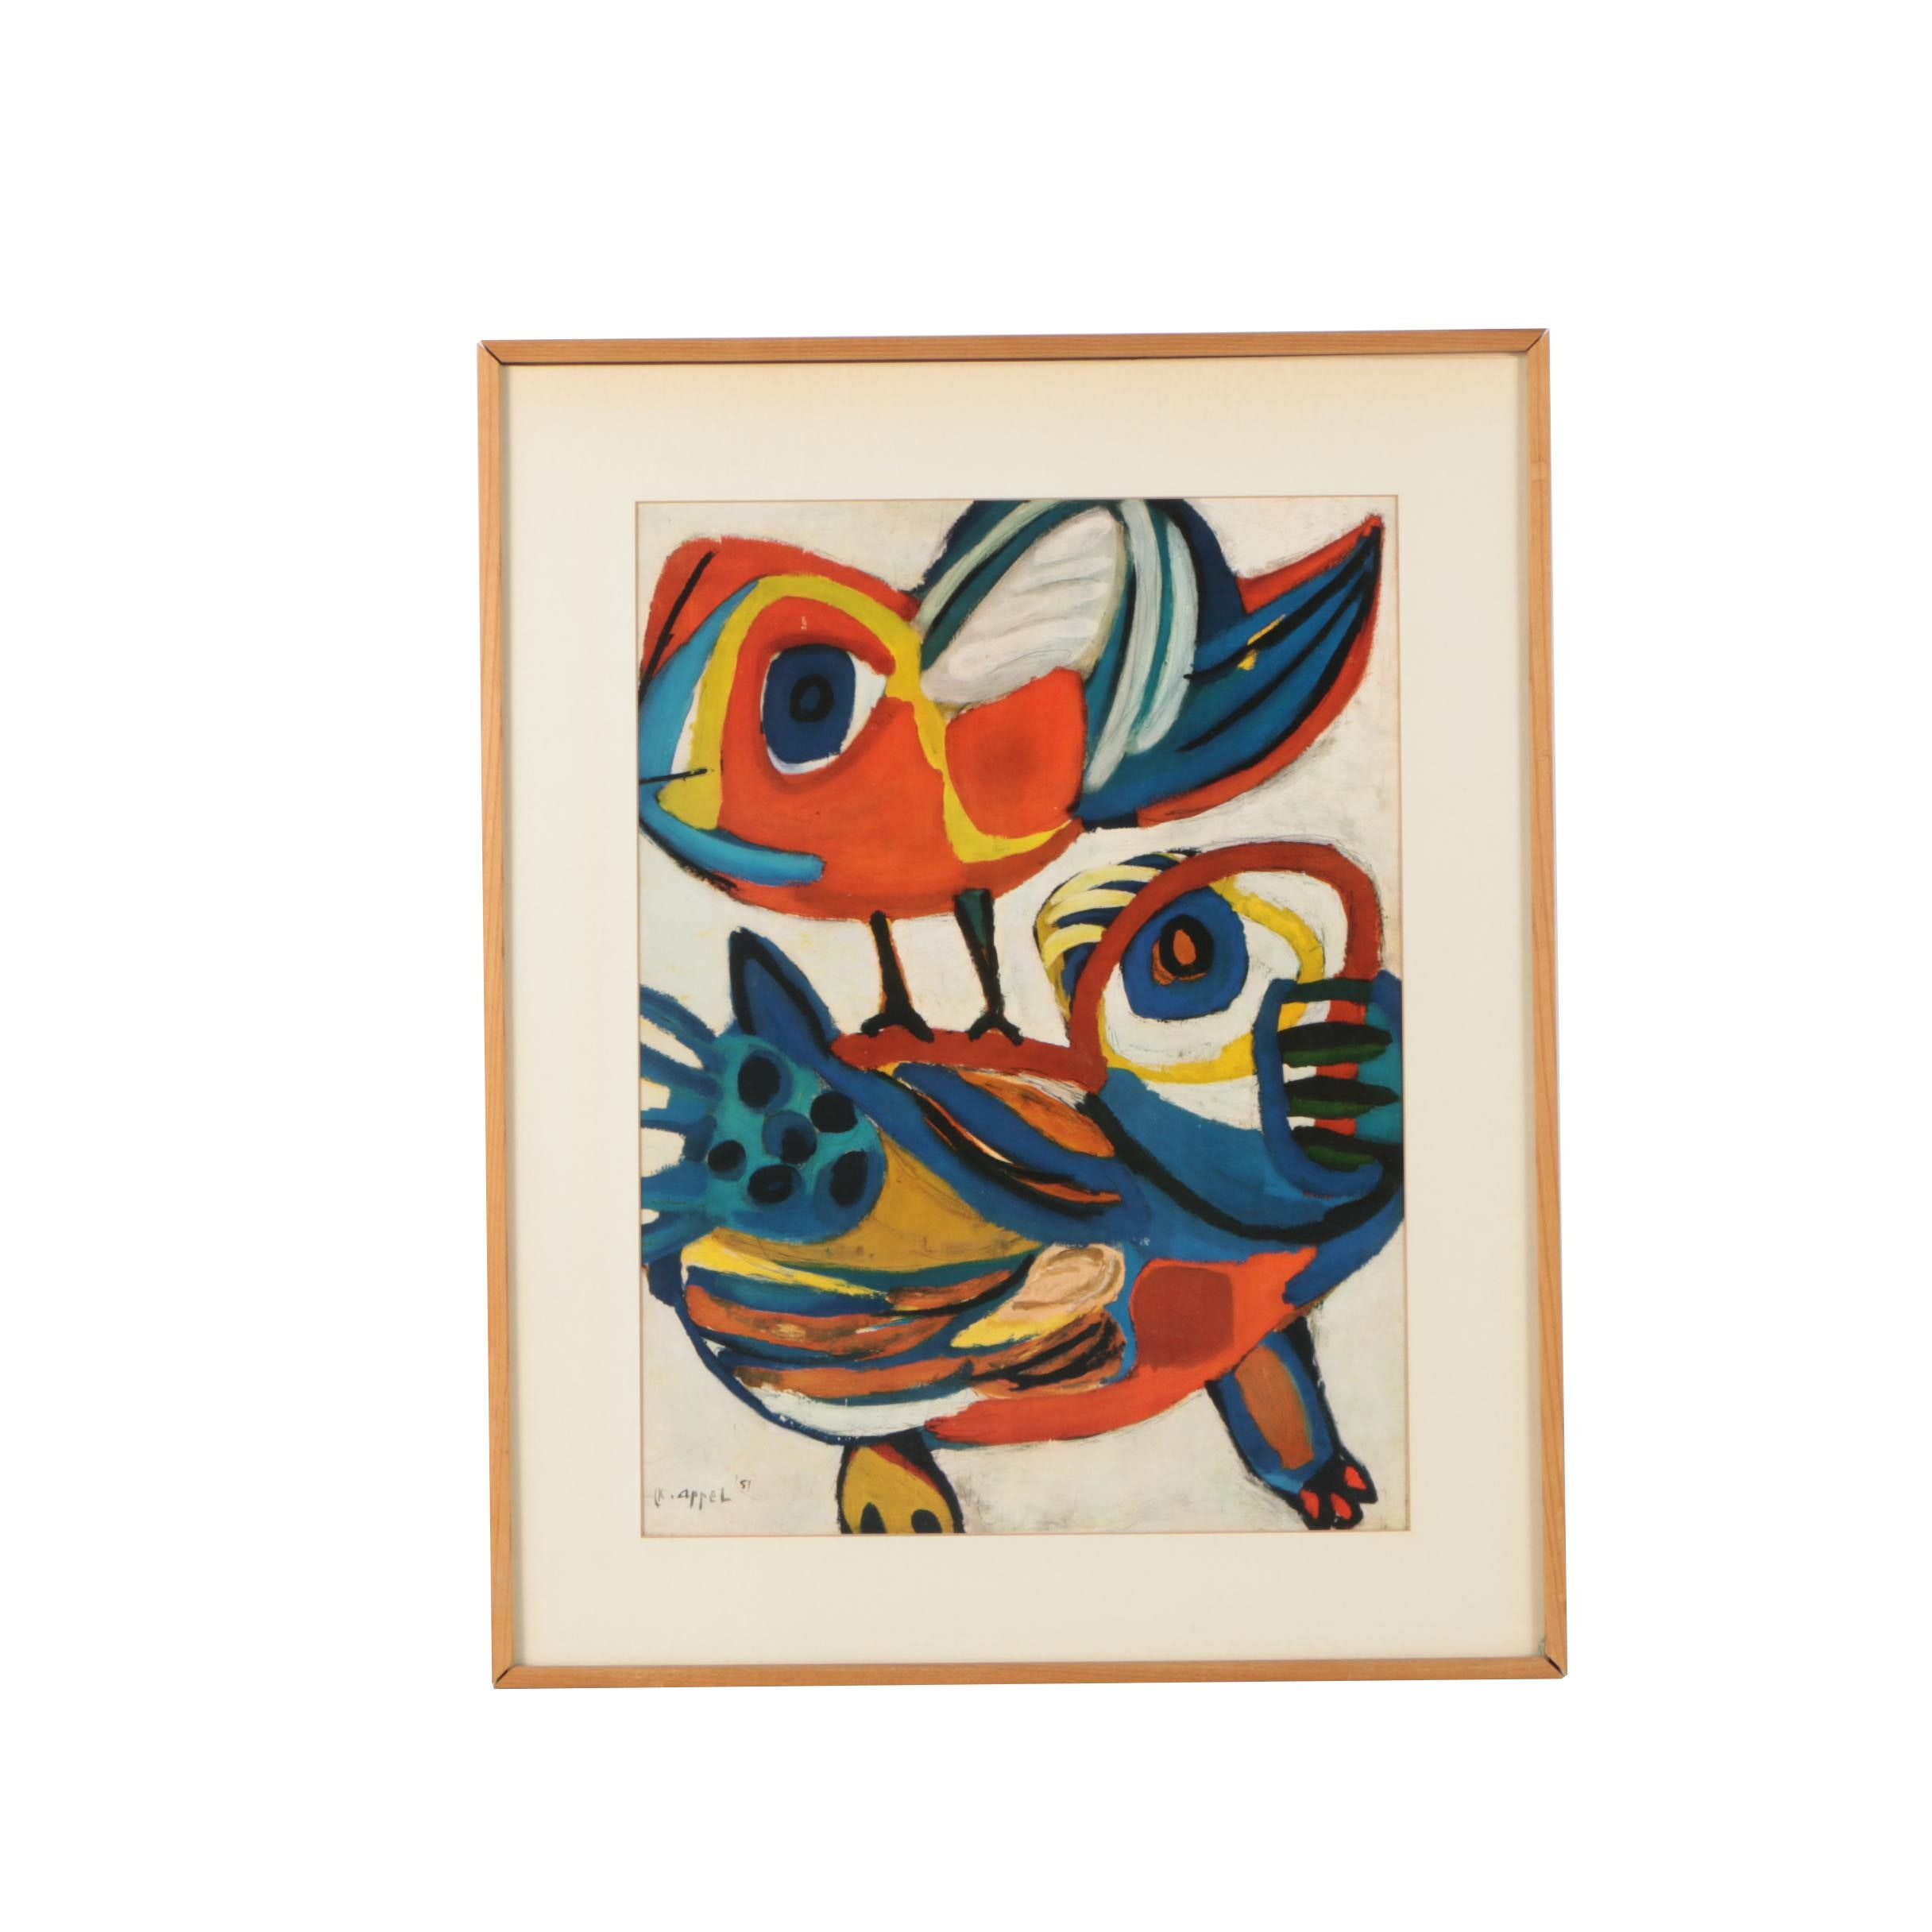 "Offset Lithograph Reproduction after 1951 Karel Appel Painting ""Ontmoeting"""